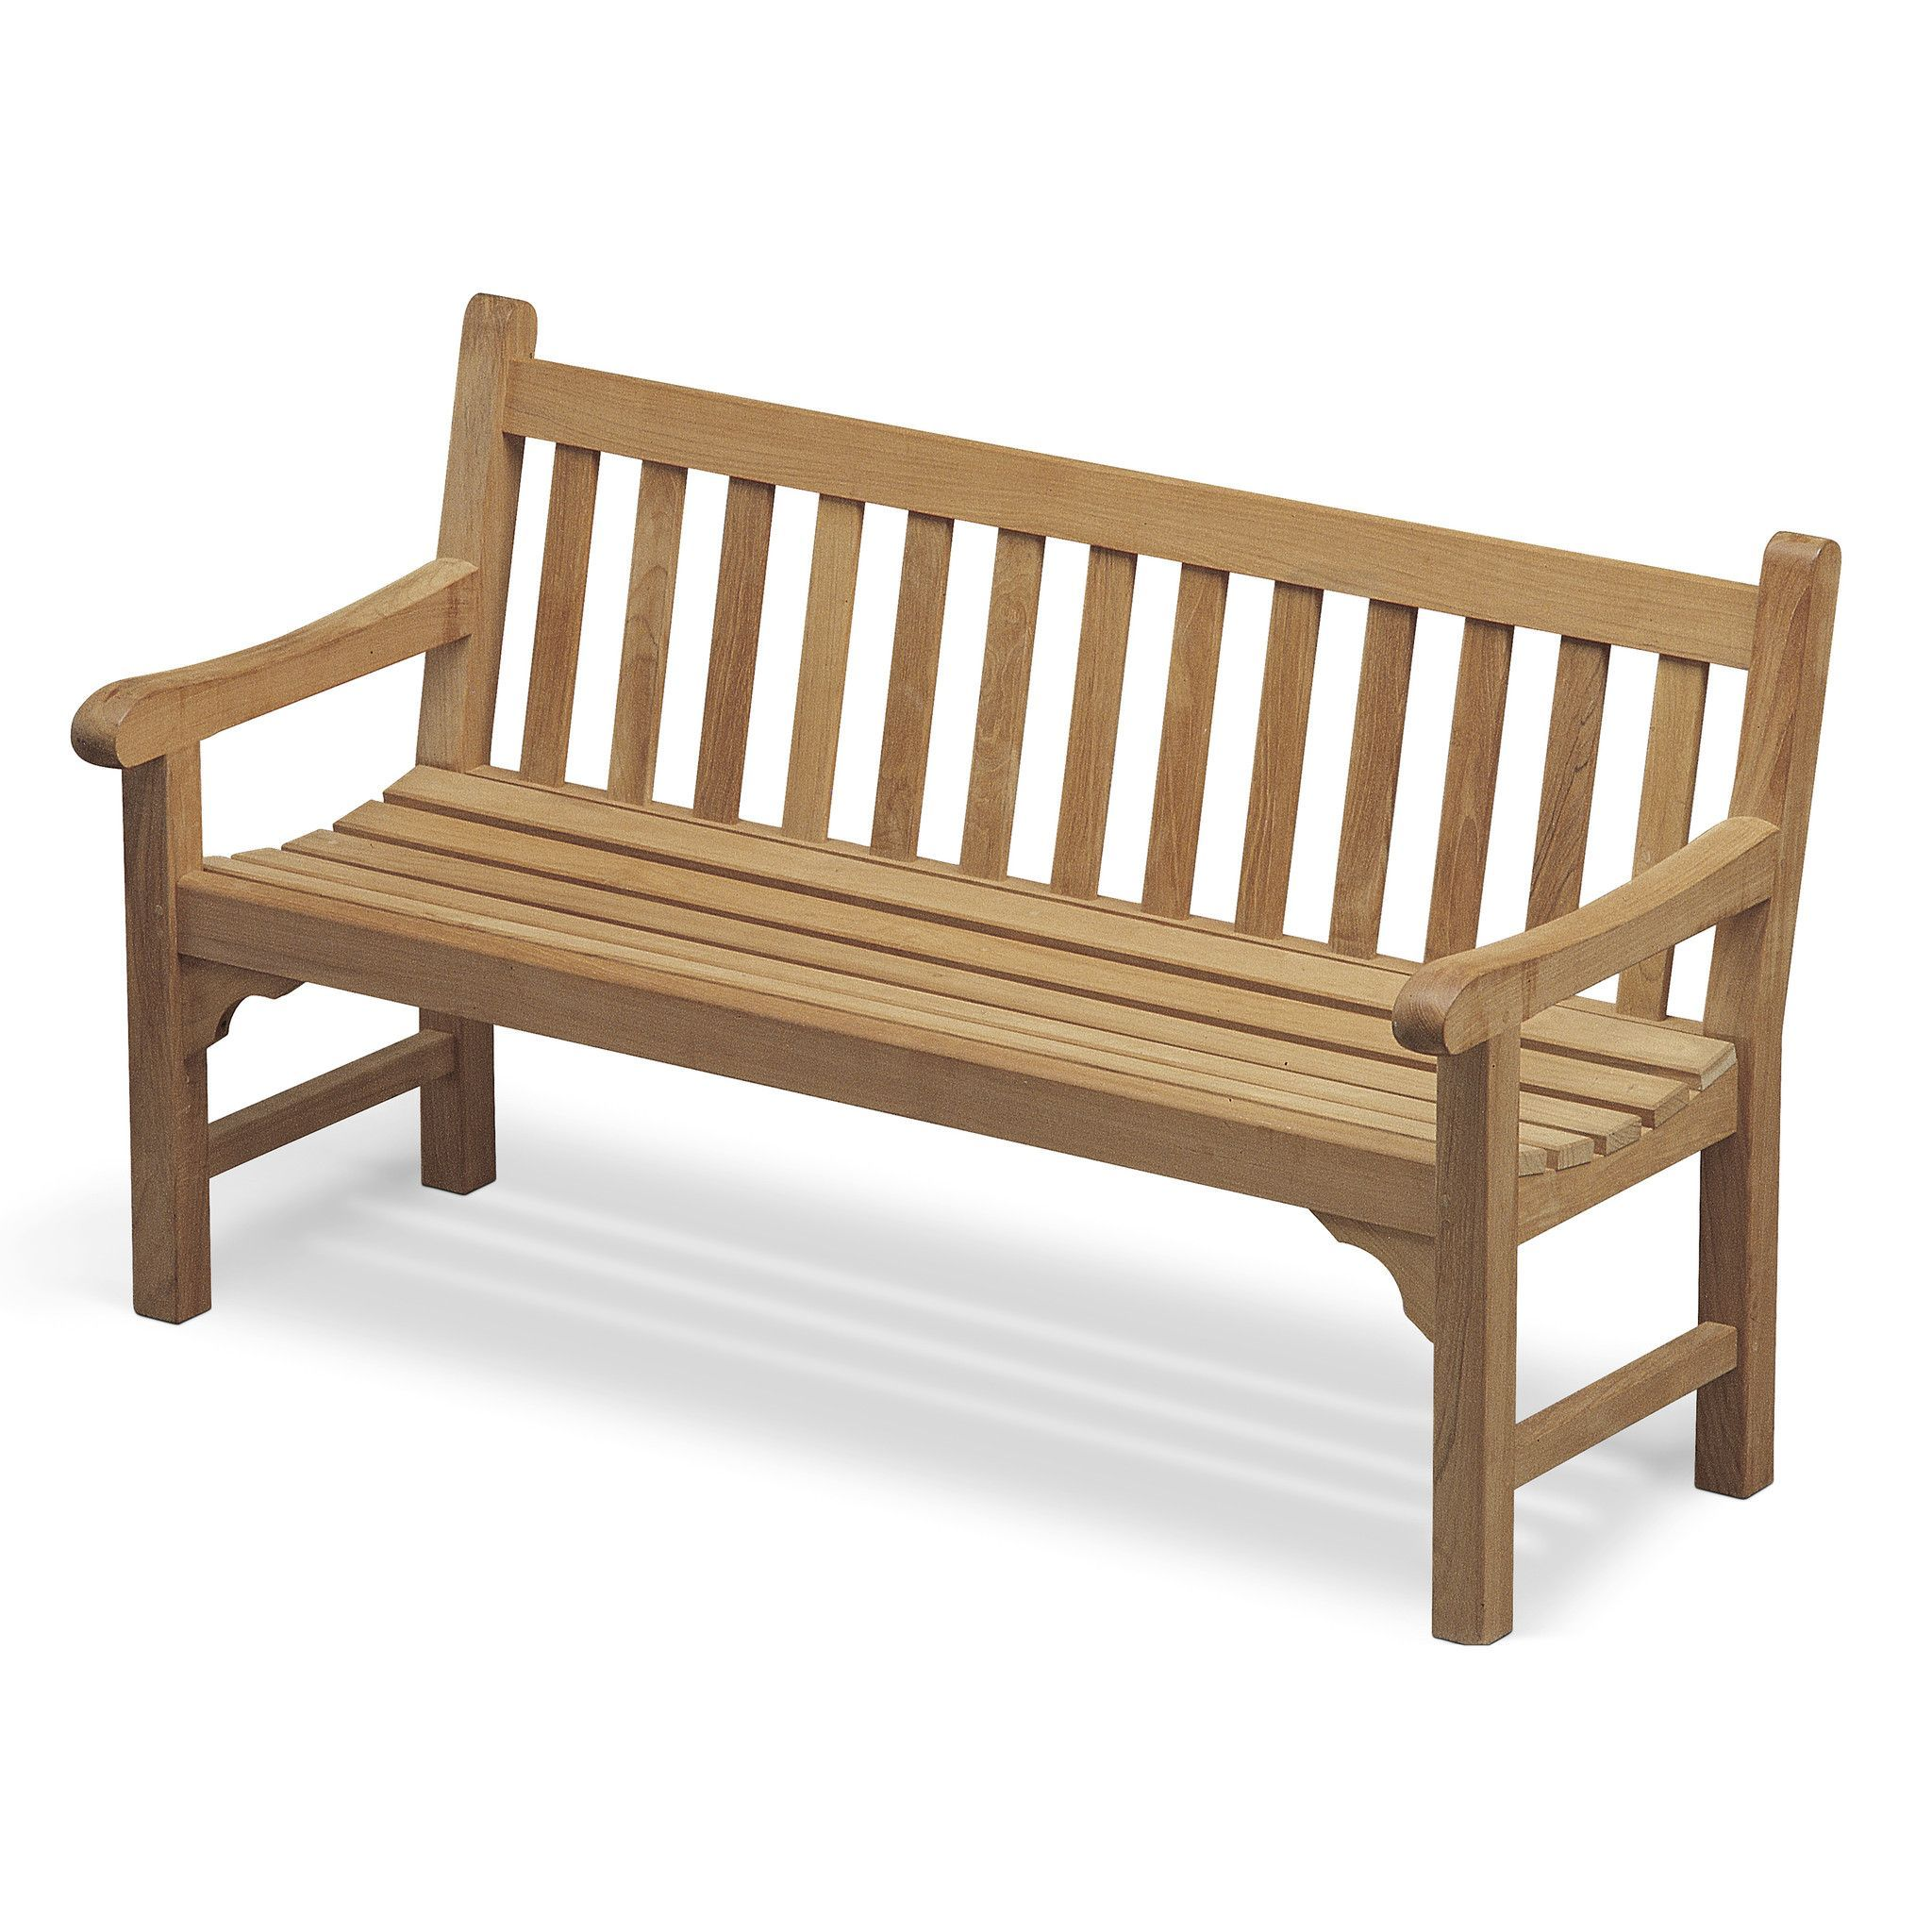 England Bench Outdoor Furniture Patio Bench Furniture